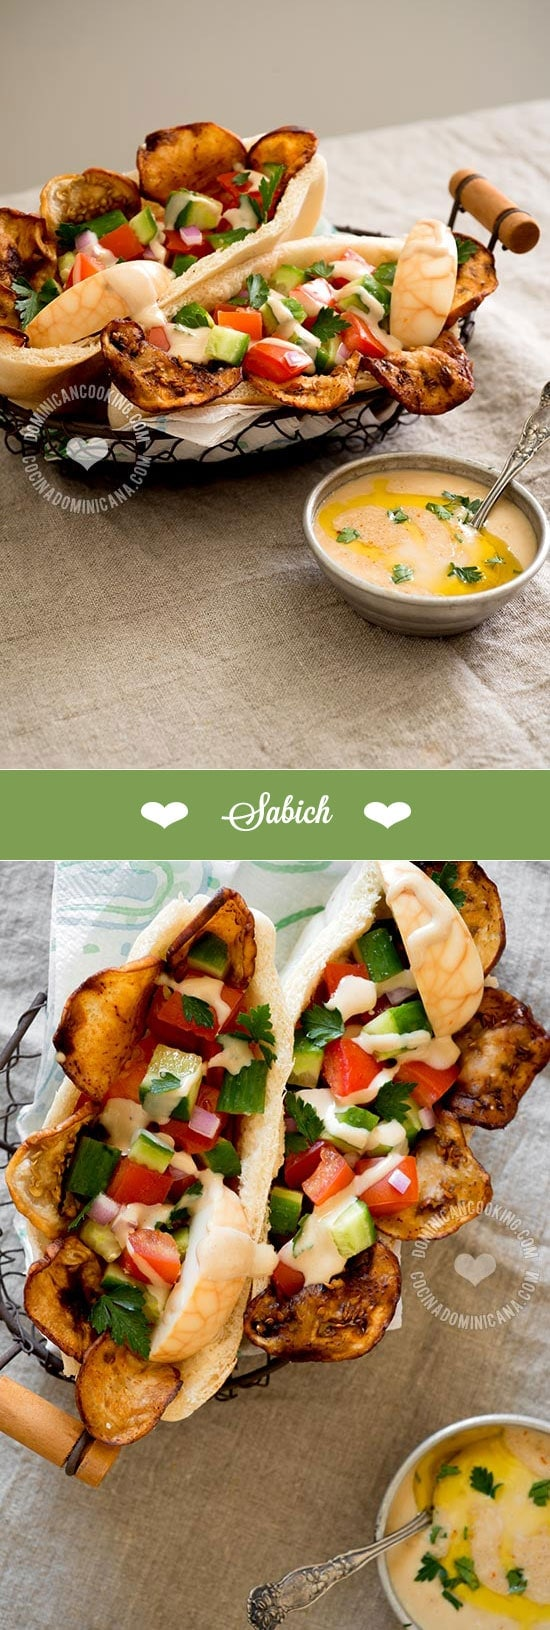 Eggplant and Eggs Pita Sandwich (Sabich) Recipe: considered the first ...